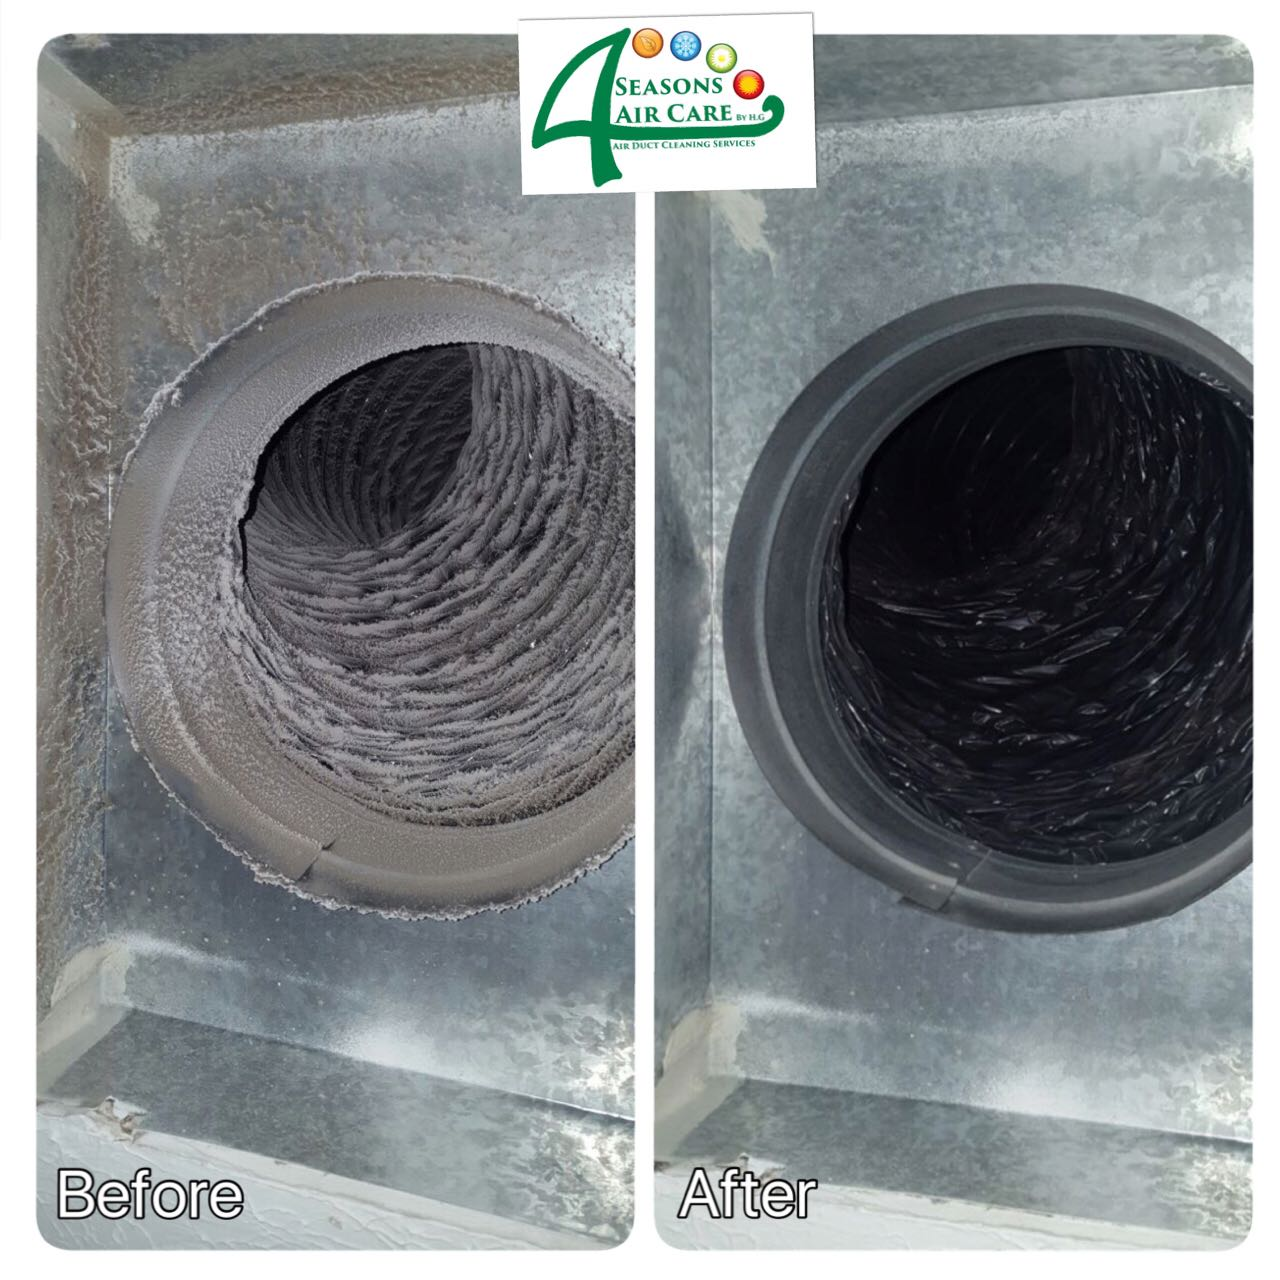 Best Dryer Vent Cleaning In Atlanta Air Duct Cleaning